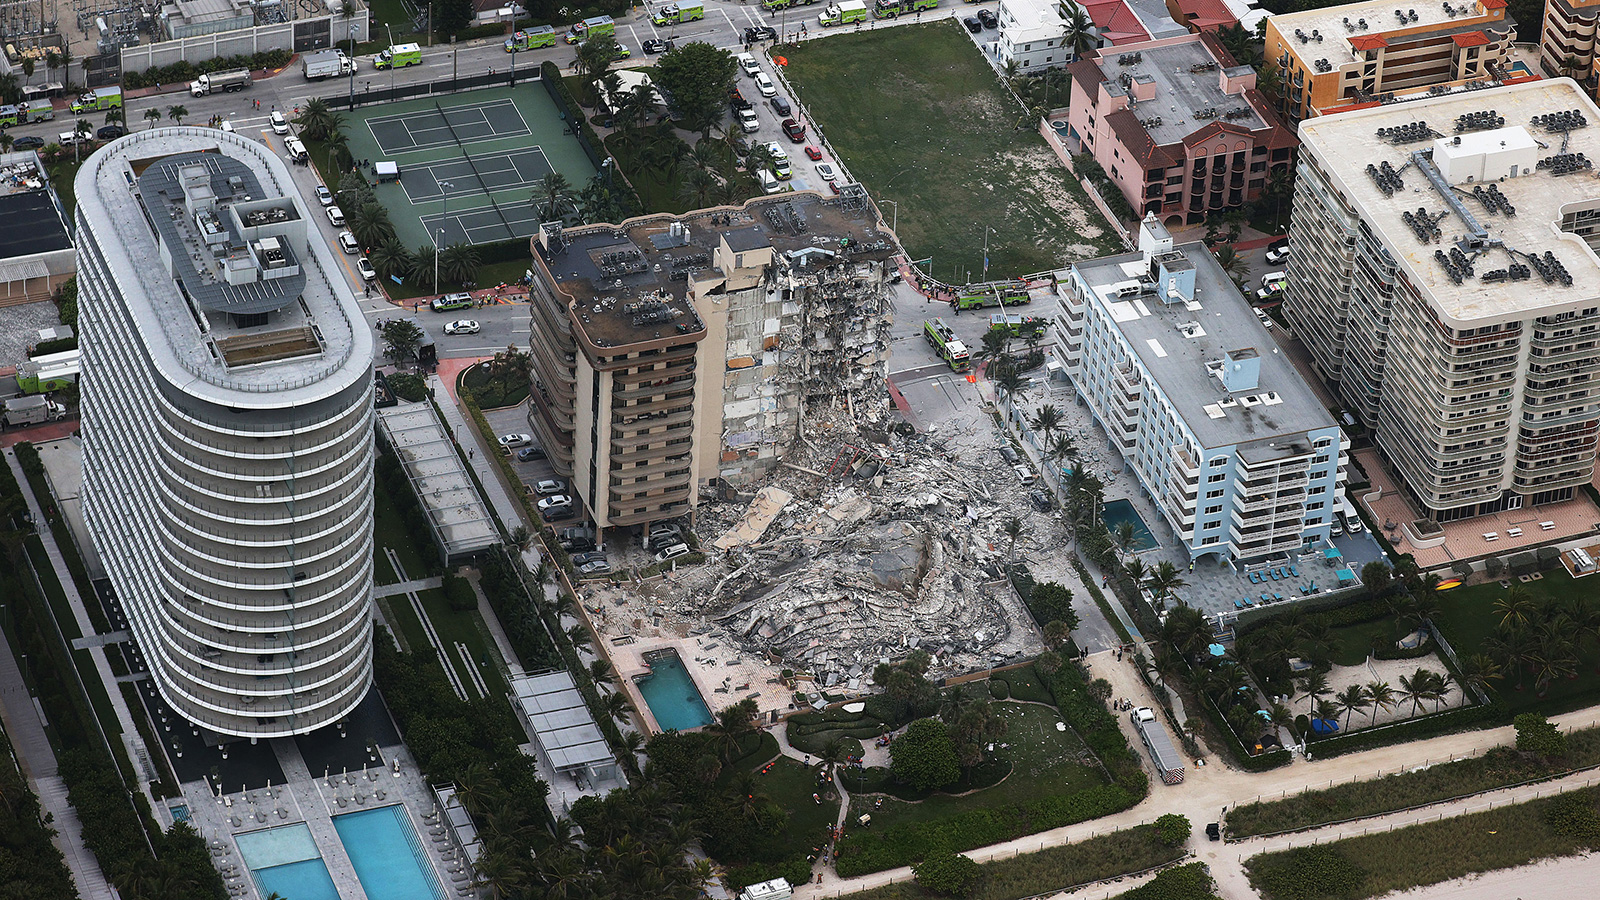 Mystery of what caused South Florida condo collapse deepens